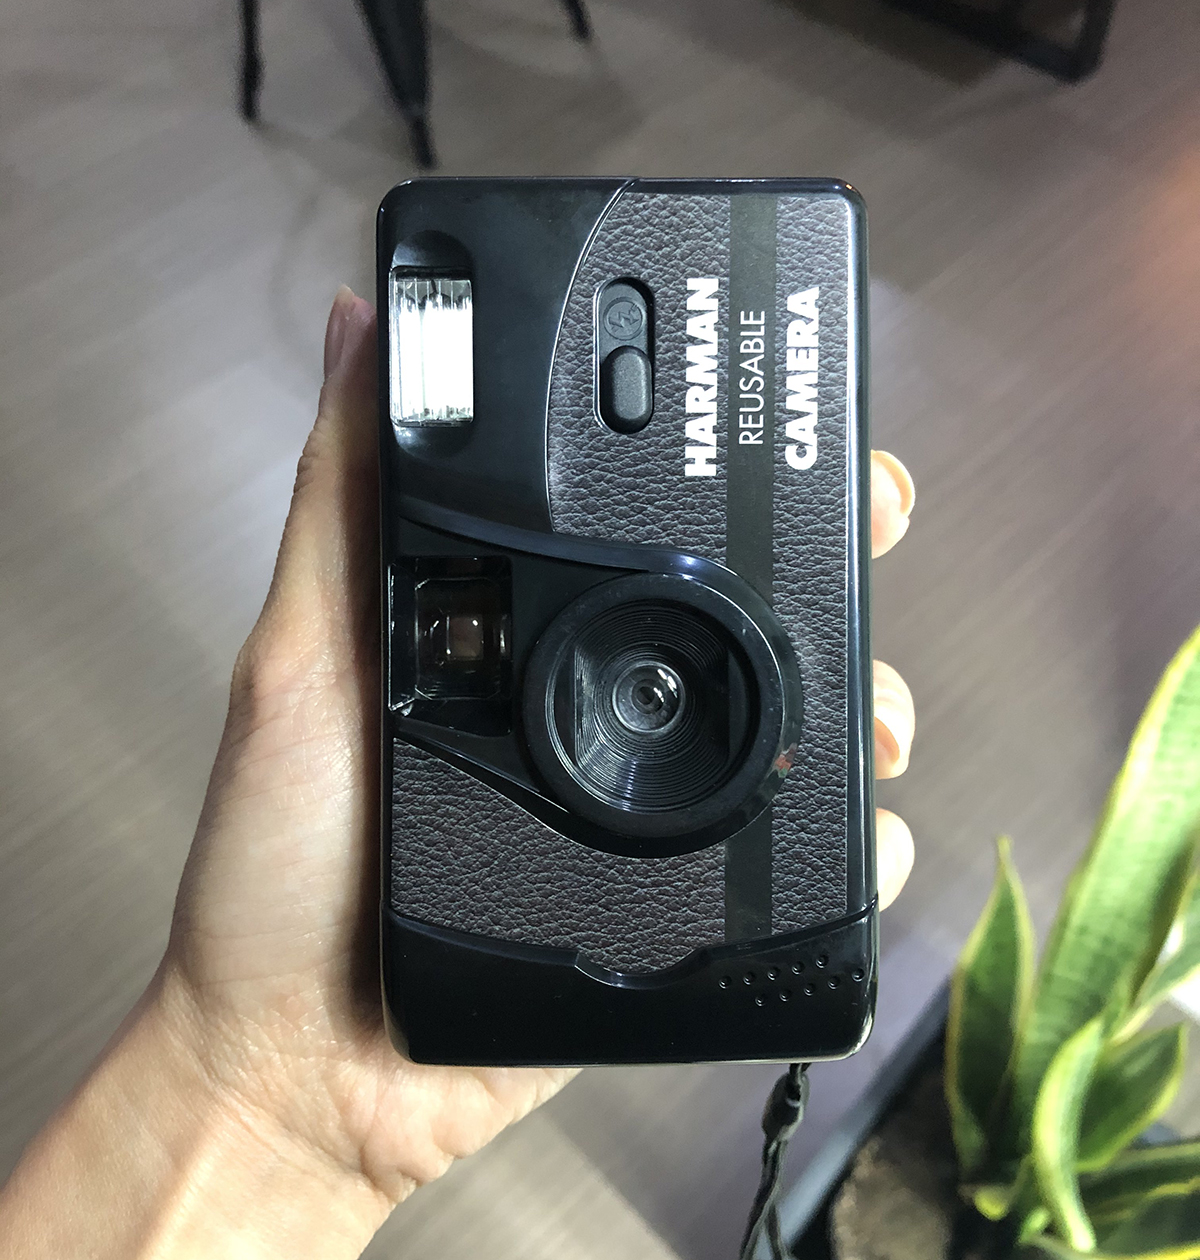 HARMAN REUSABLE CAMERA: The body is purely plastic with sticker detailing.